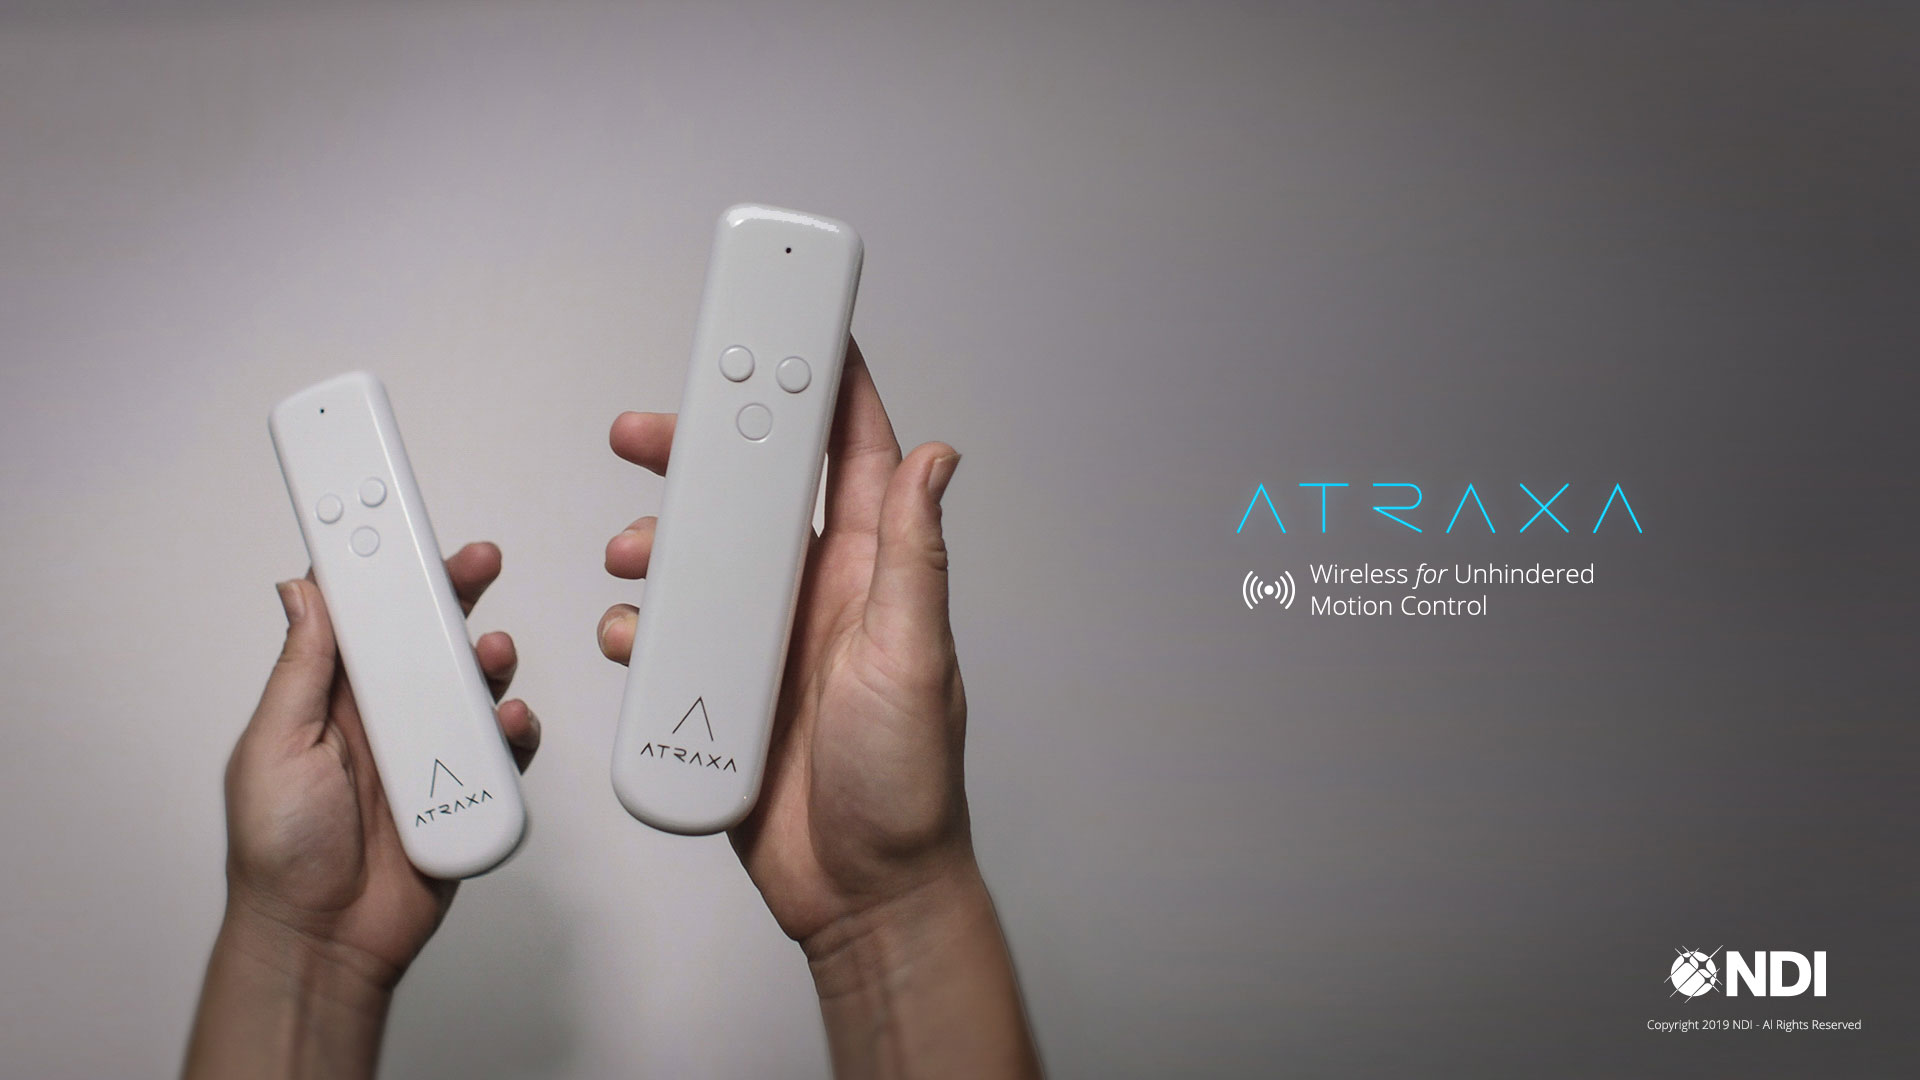 Hands-on: VR Motion Controller 'Atraxa' Offers Promising 6DOF Without Occlusion Issues